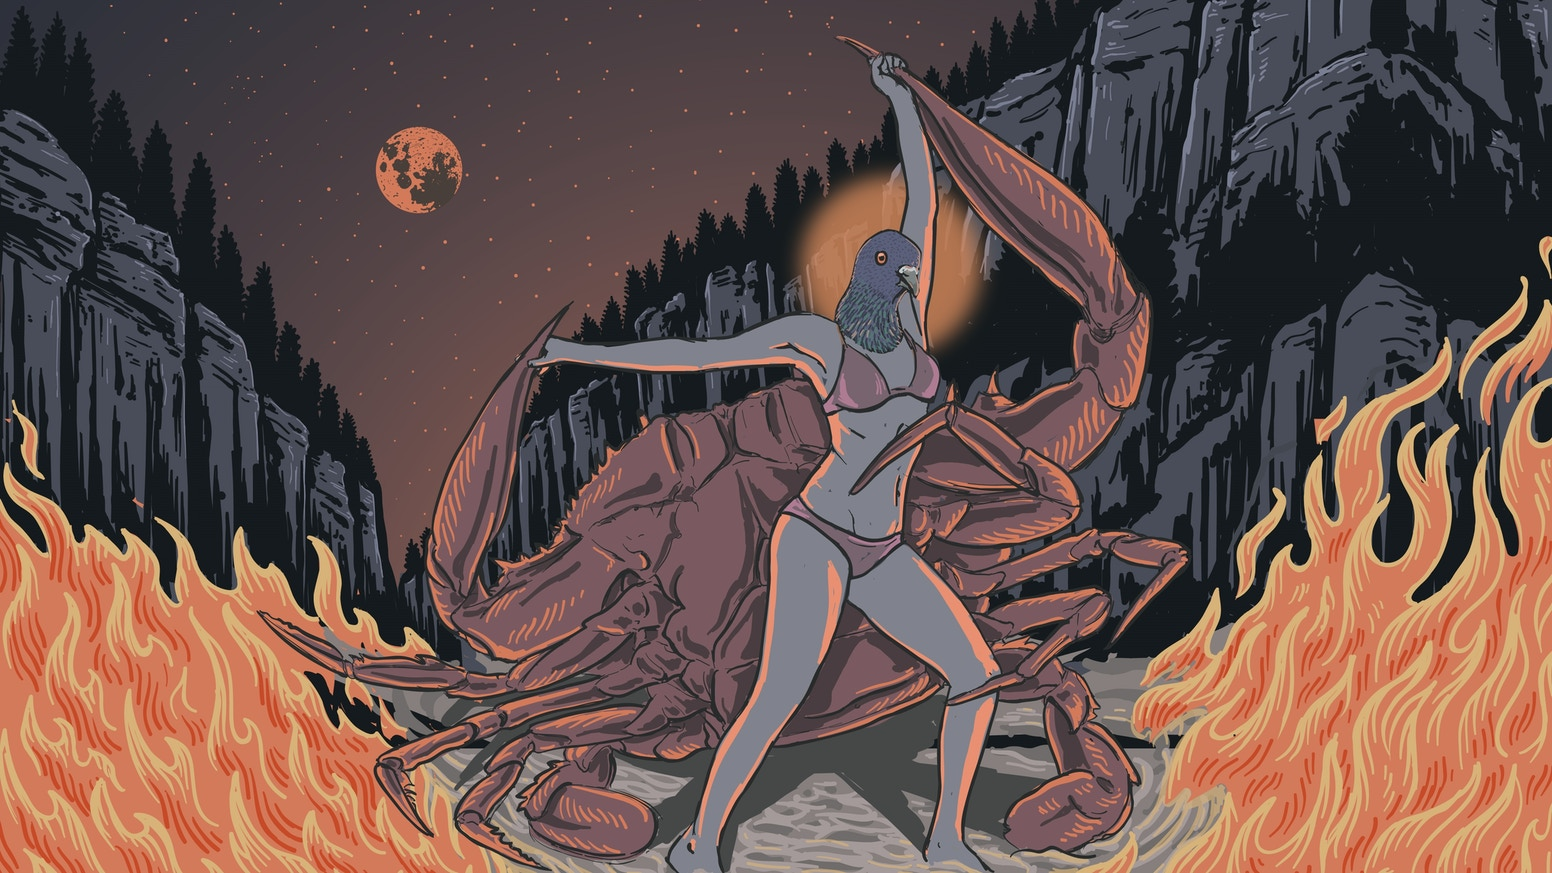 Voyage to crab mountain prog n roll album by firegarden